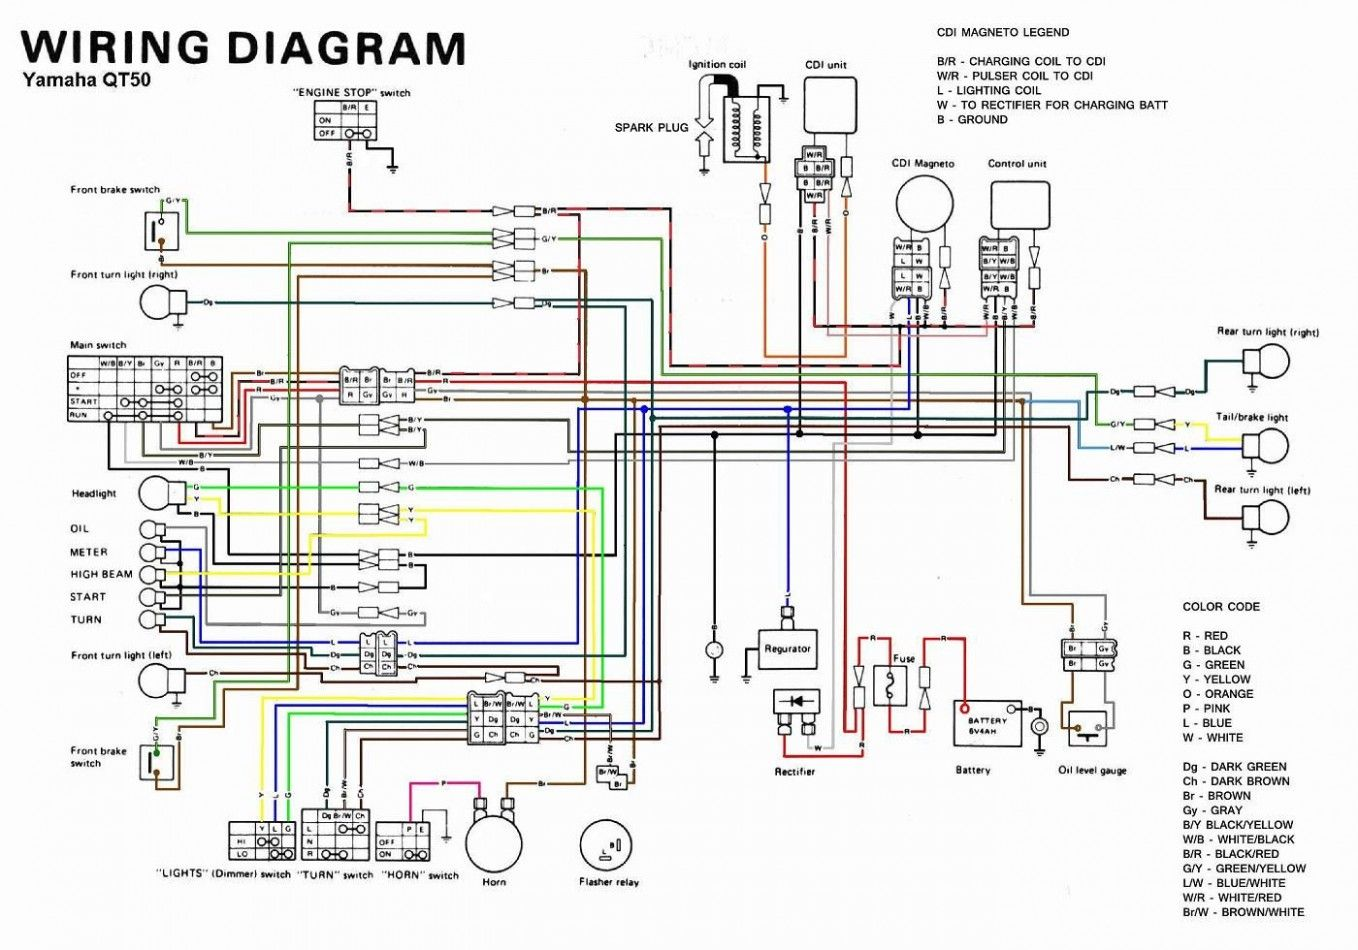 Yamaha Rs 8 Engine Diagram Specification Yamaha Rs 8 Engine Diagram Specification